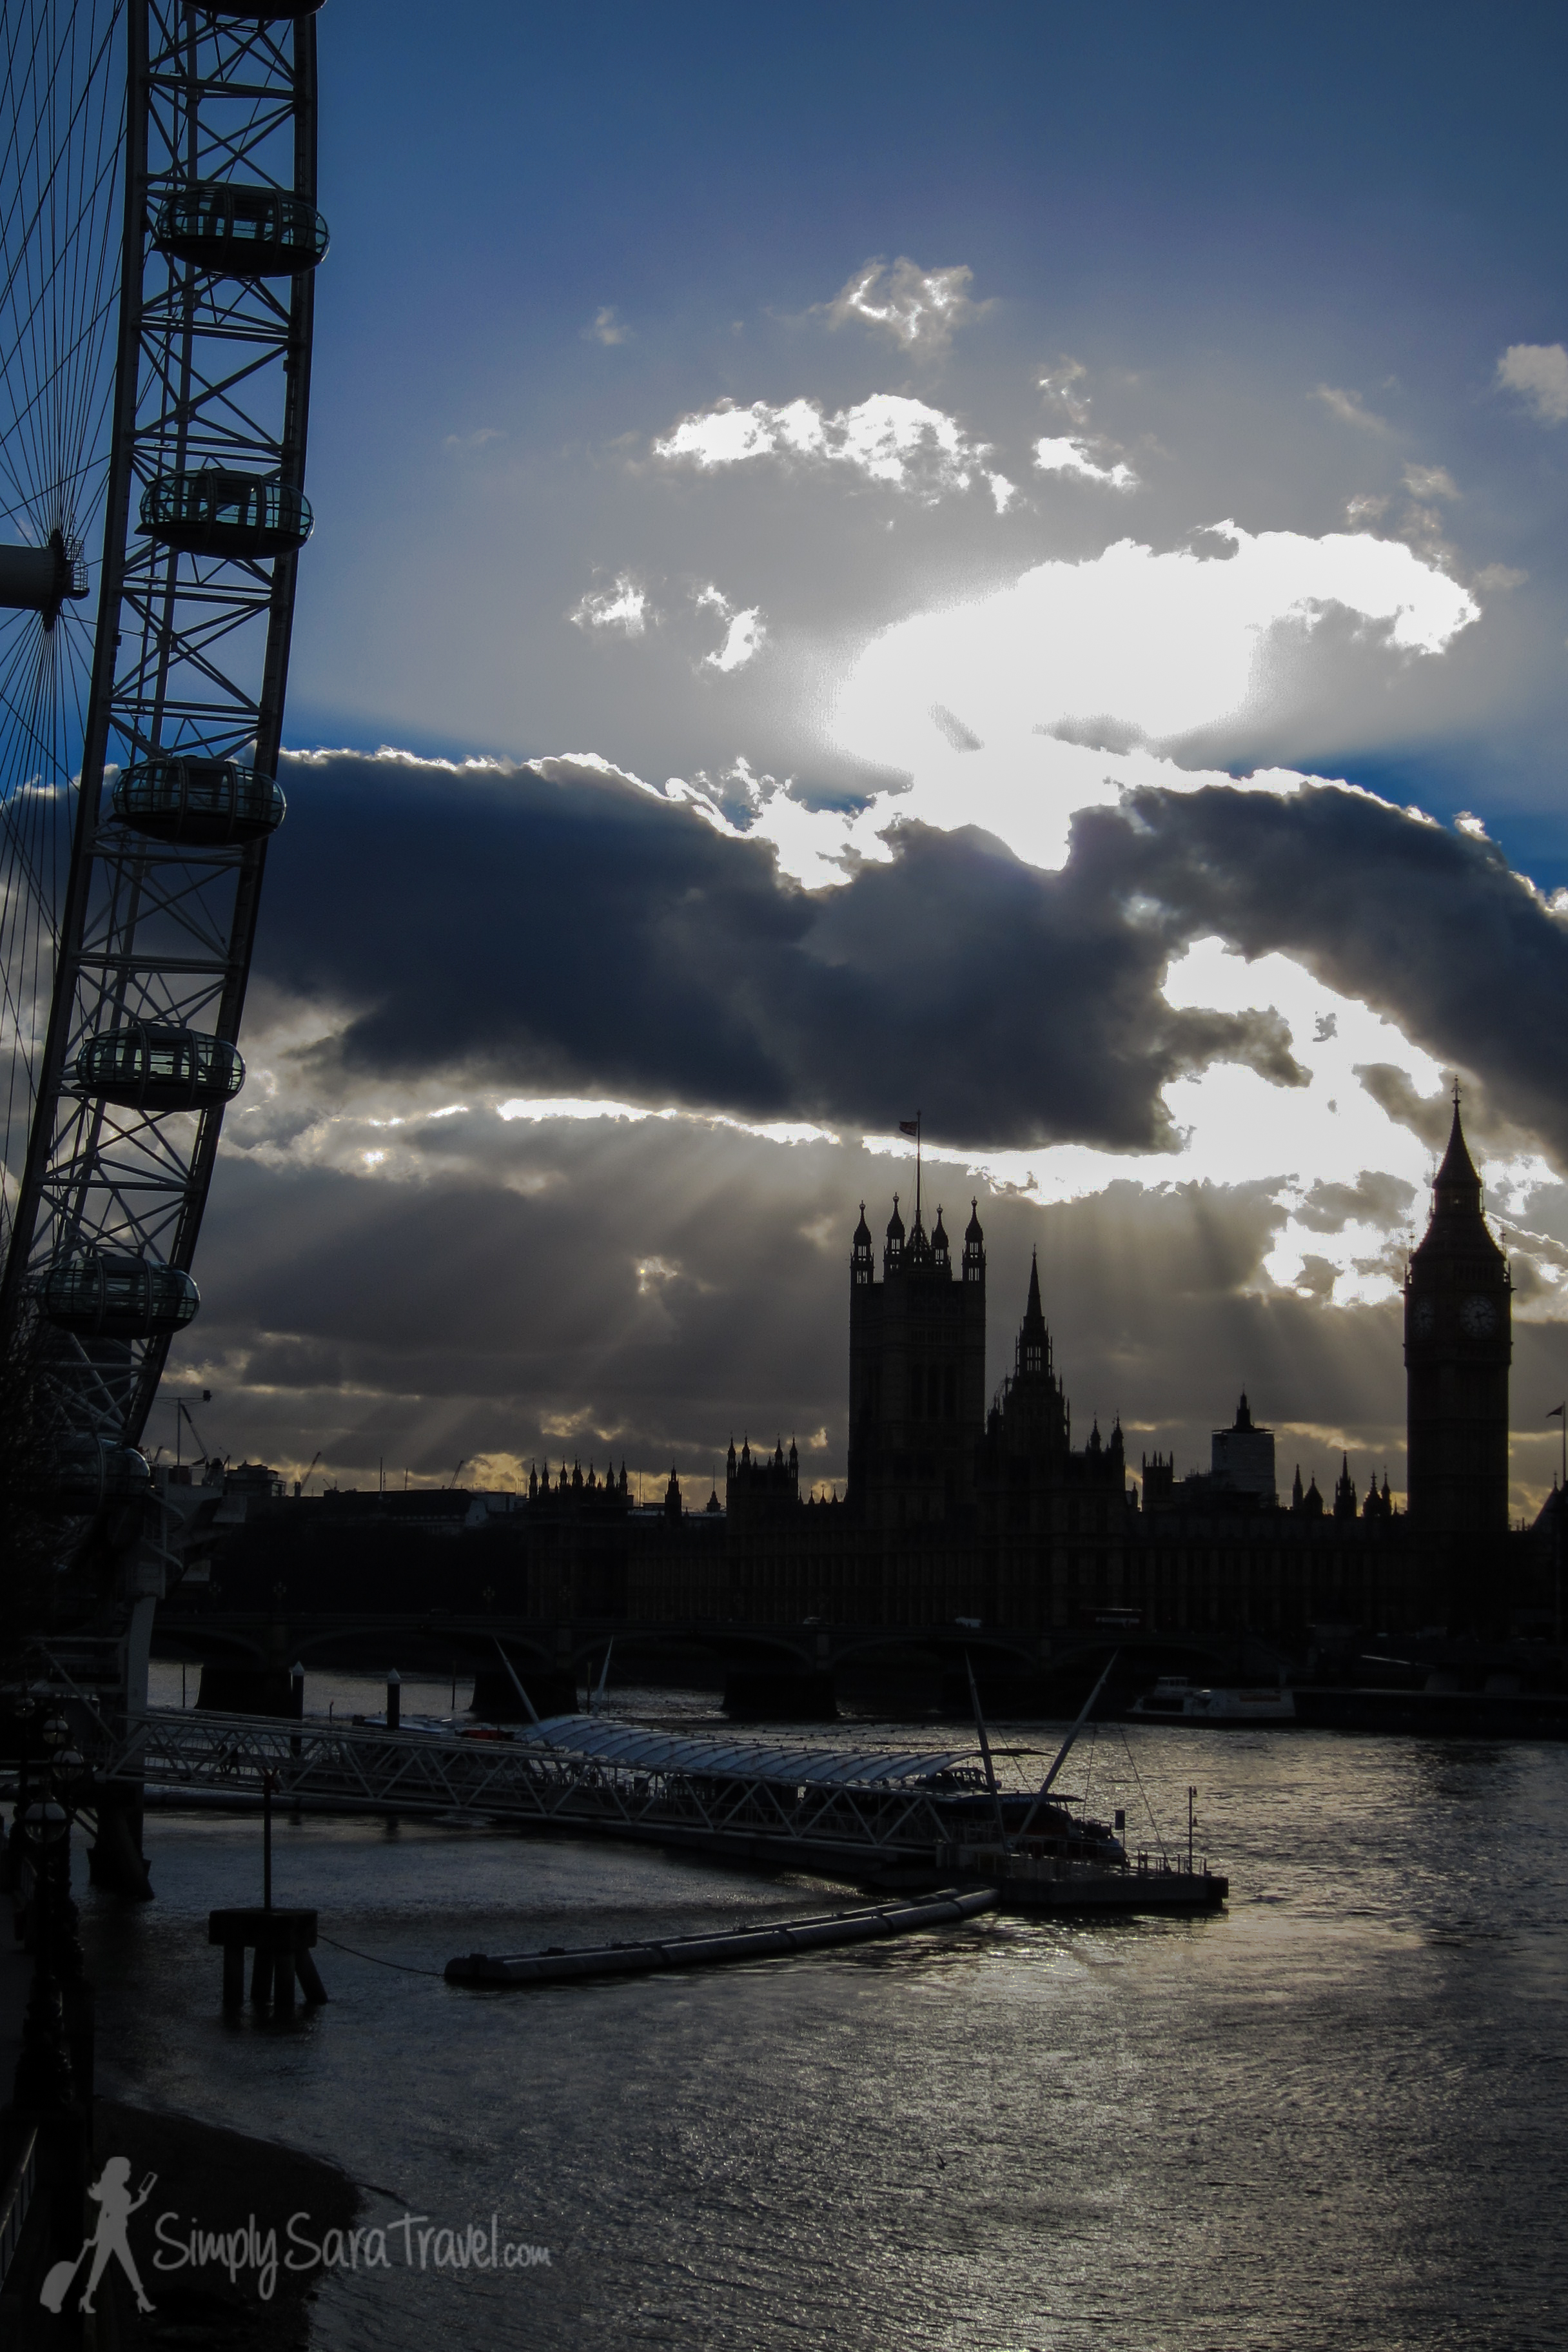 London - even beautiful in the bleak winter days of January